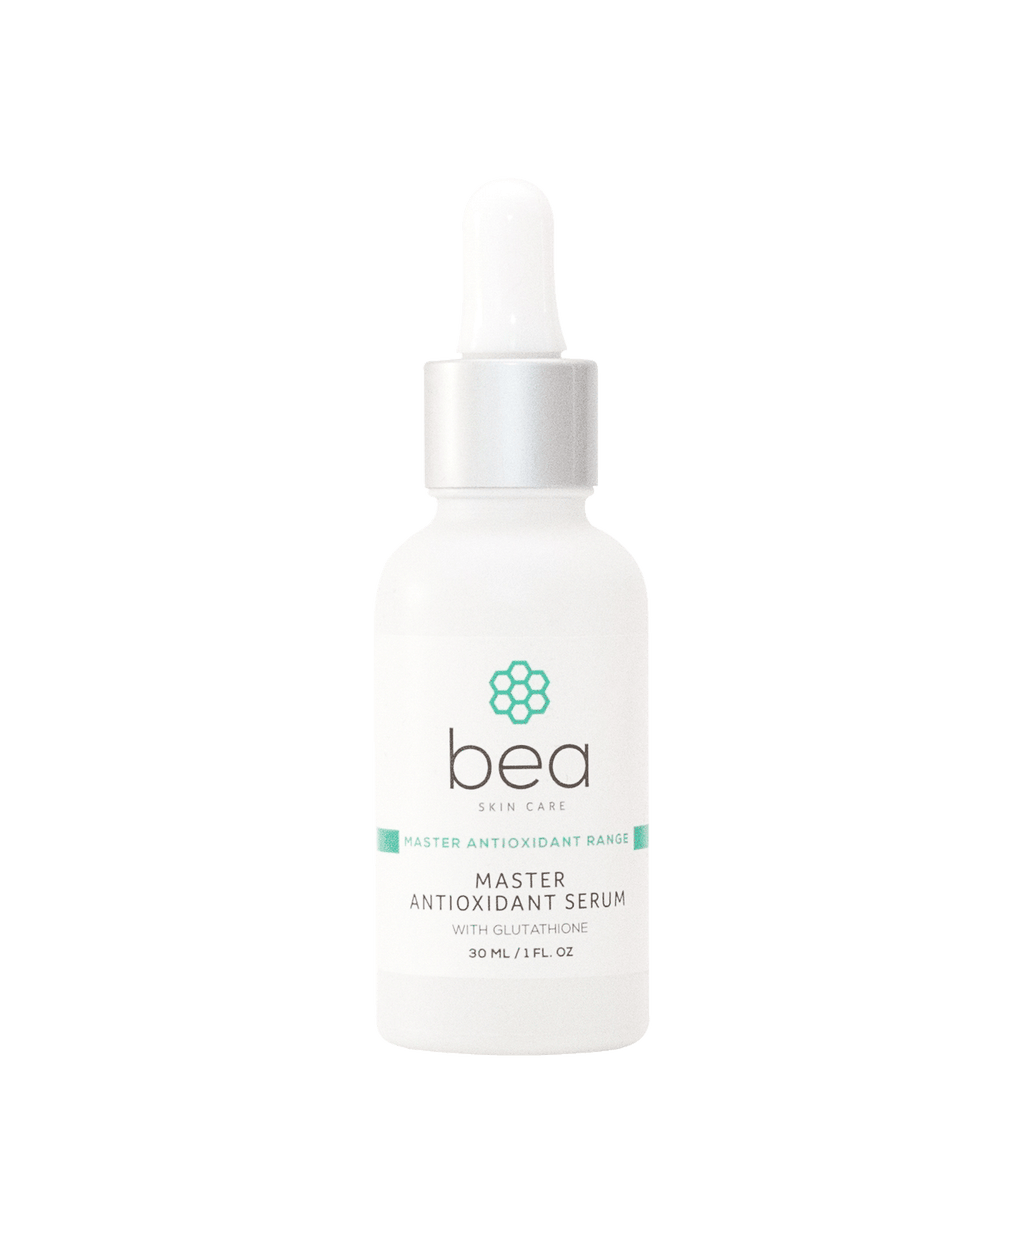 Master Antioxidant Serum - 30 ml Face Serum bea Skin Care